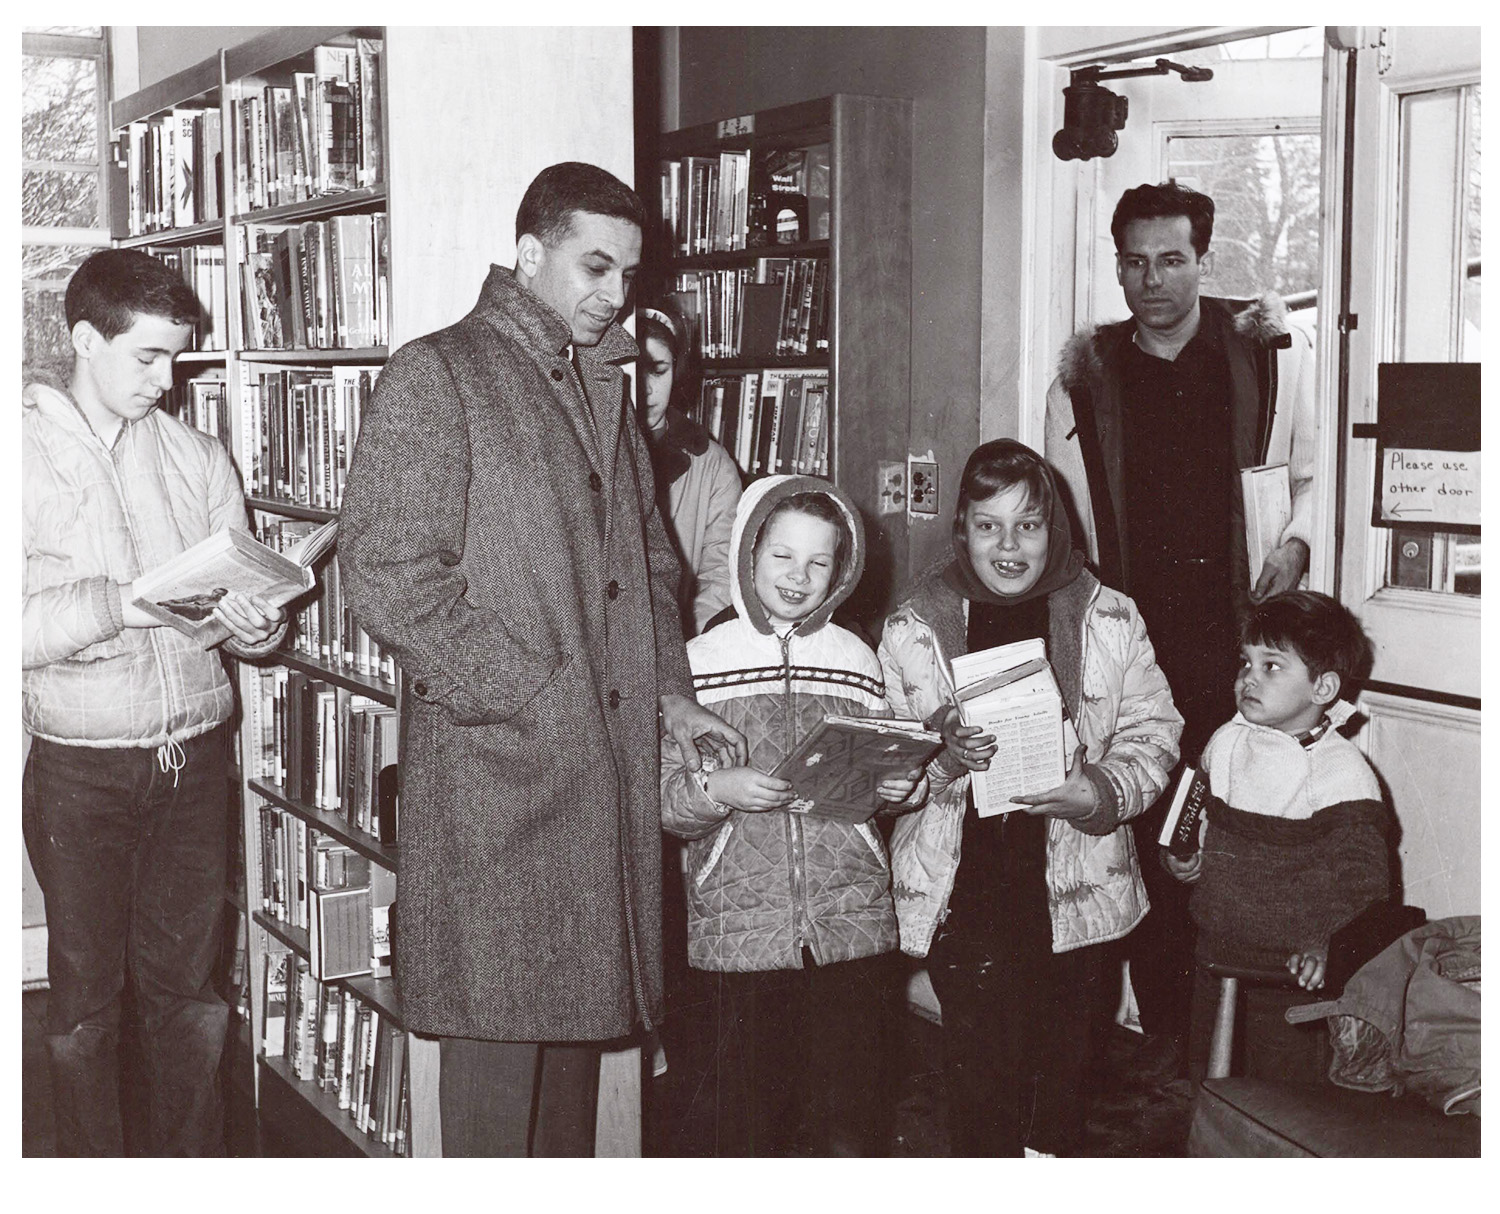 historic photo of children with books